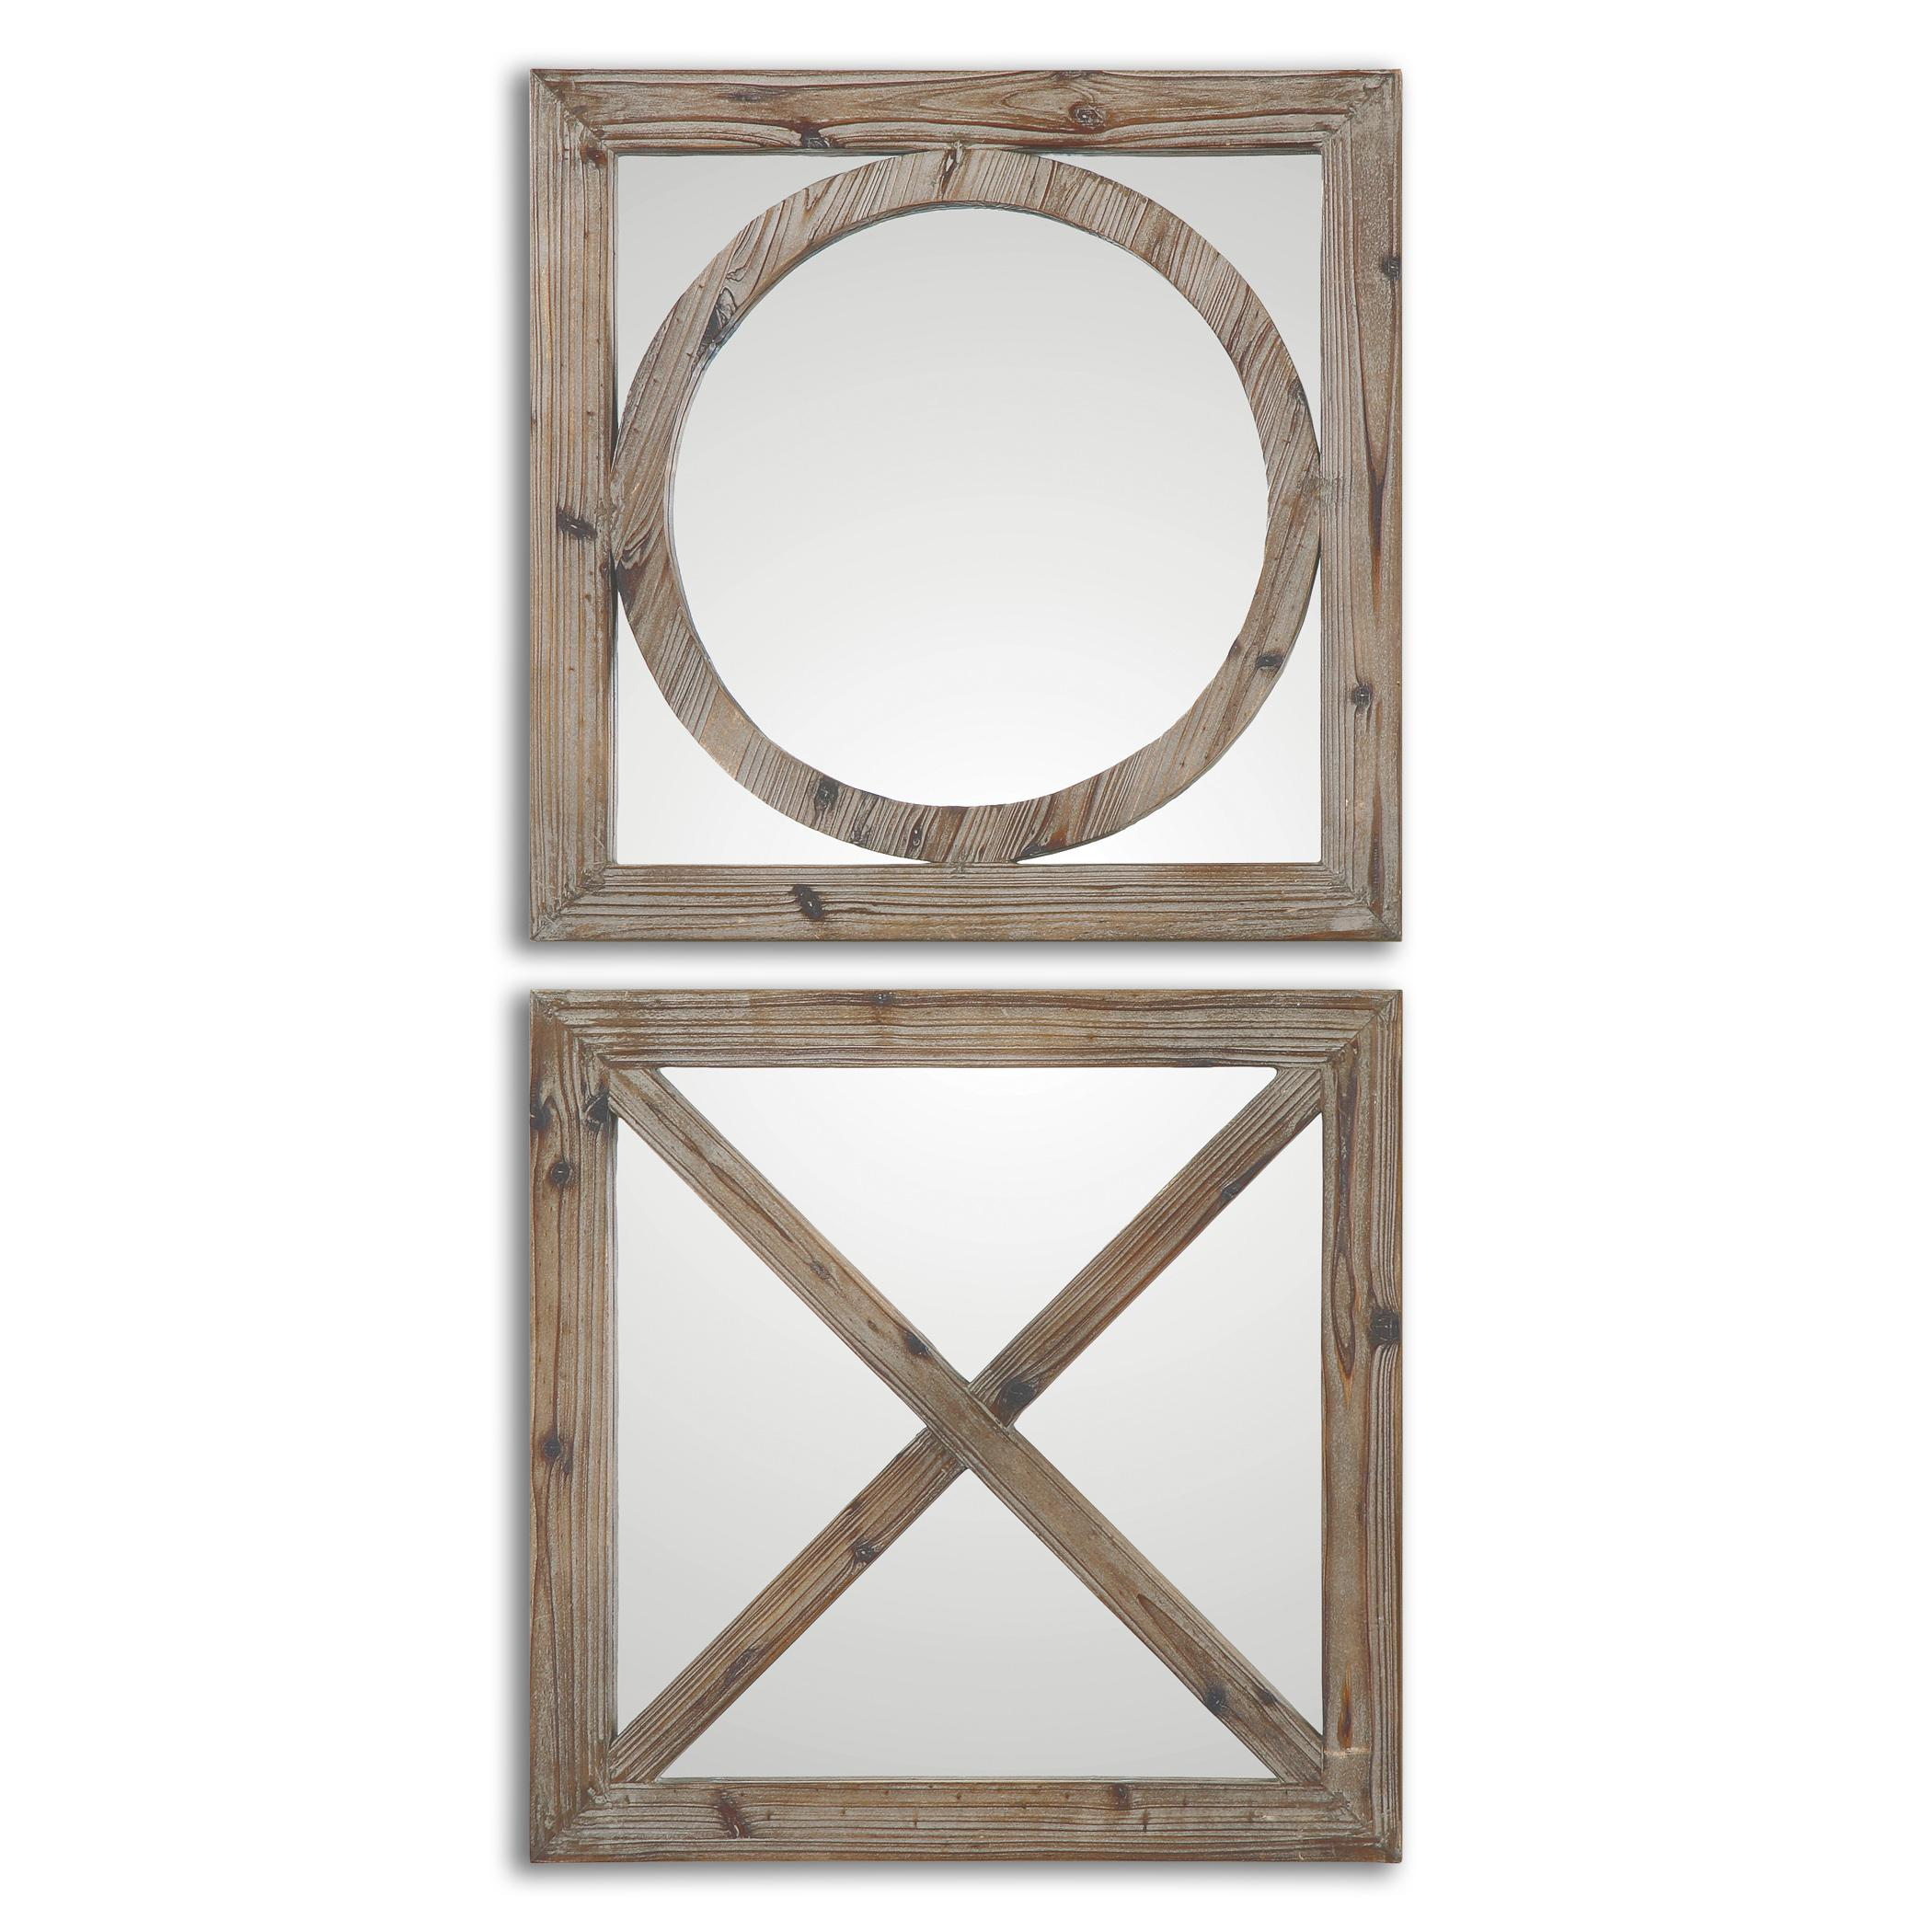 Mirrors Baci E abbracci, Wooden Mirrors Set of 2 by Uttermost at Miller Waldrop Furniture and Decor